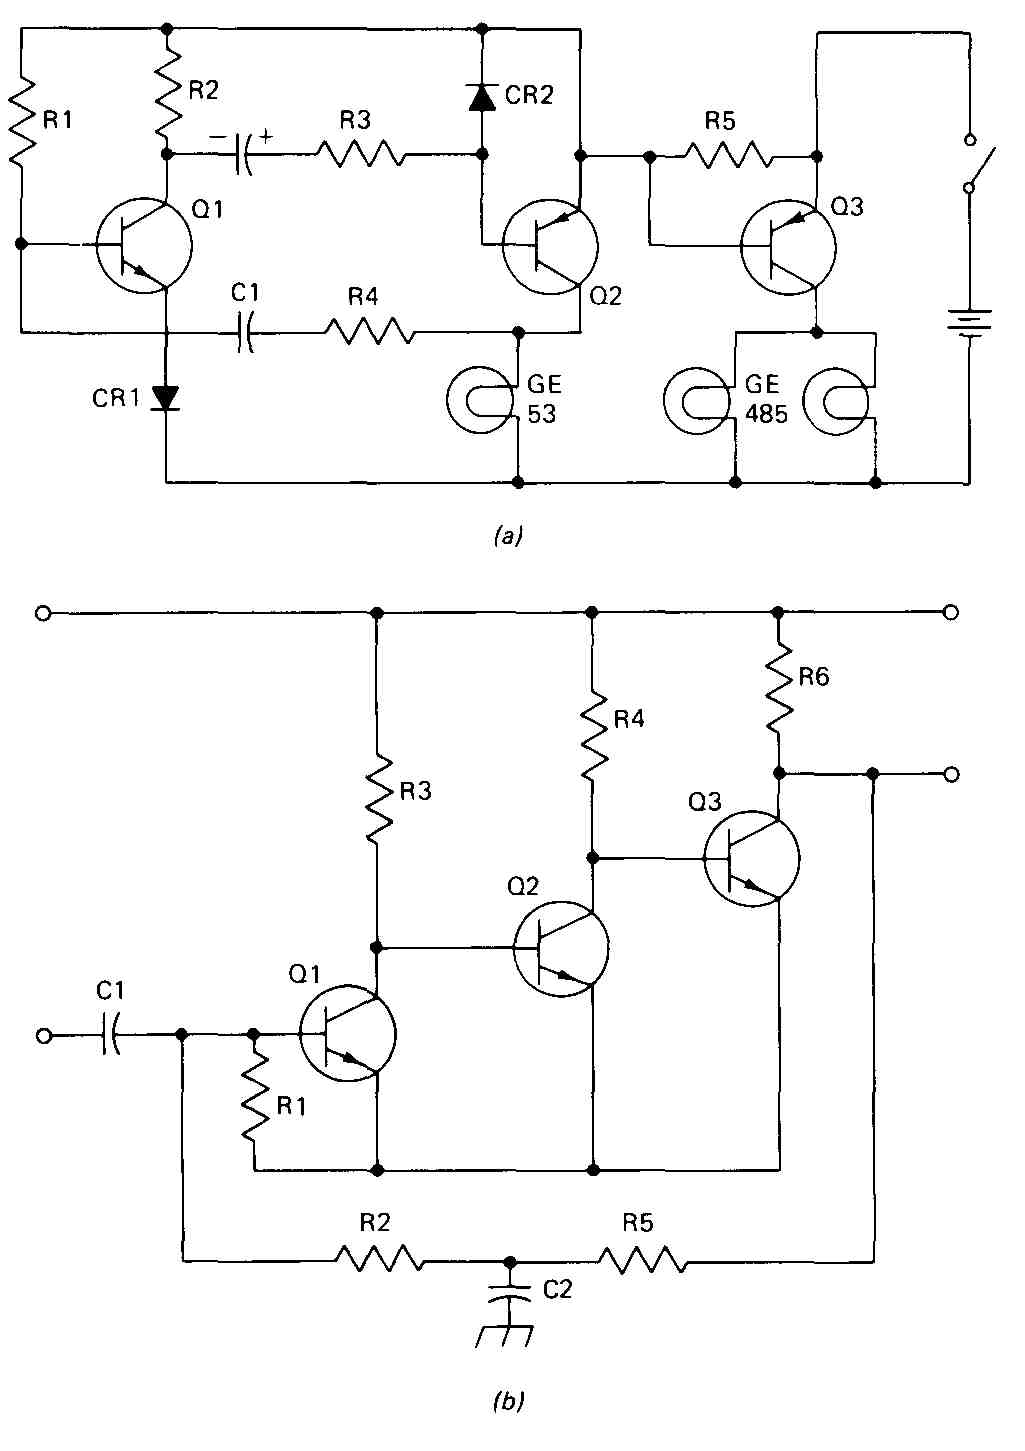 Basic Electronic Circuits Diagram Pdf Nice Place To Get Wiring Remote Control Circuit Using Kt3170 Also Dc Motor Brake Schematic Diagrams Best Rh 64 E V L Y N De Design